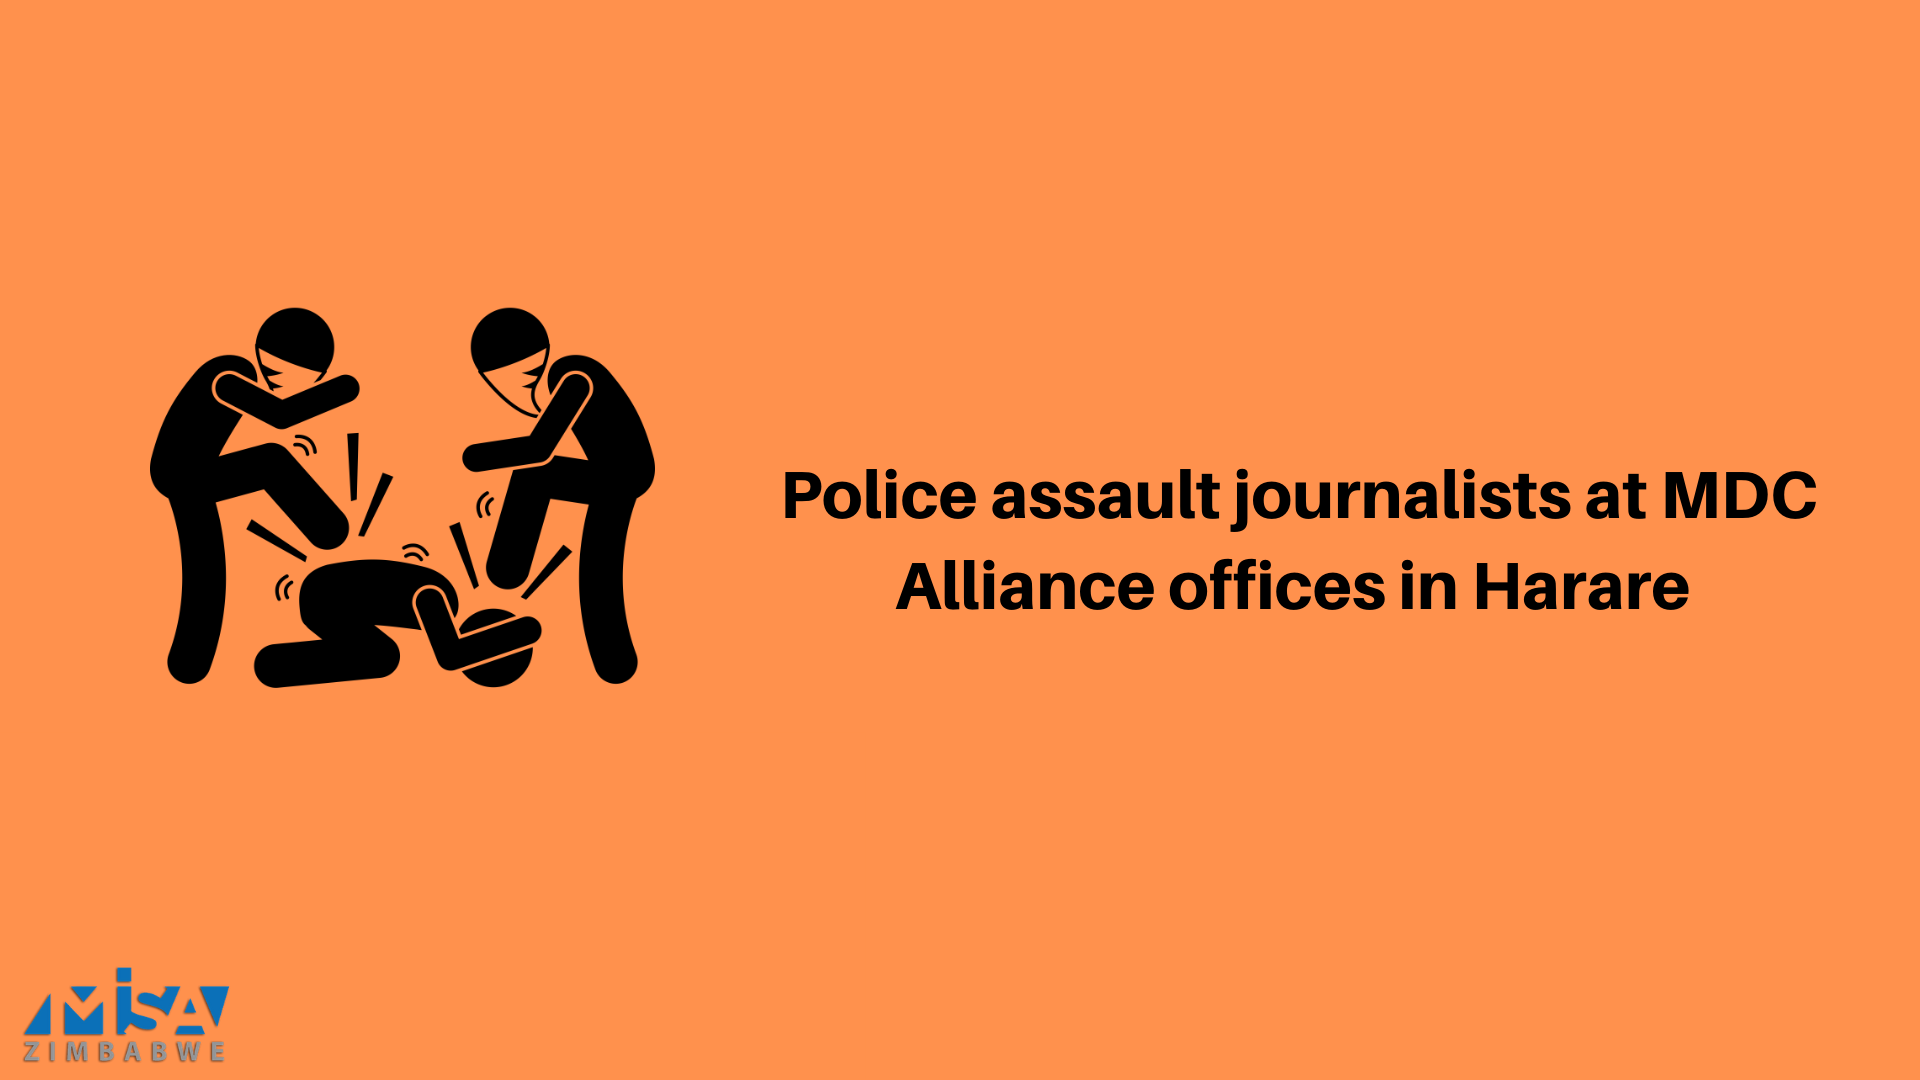 Police assault journalists at MDC Alliance HQ in Harare